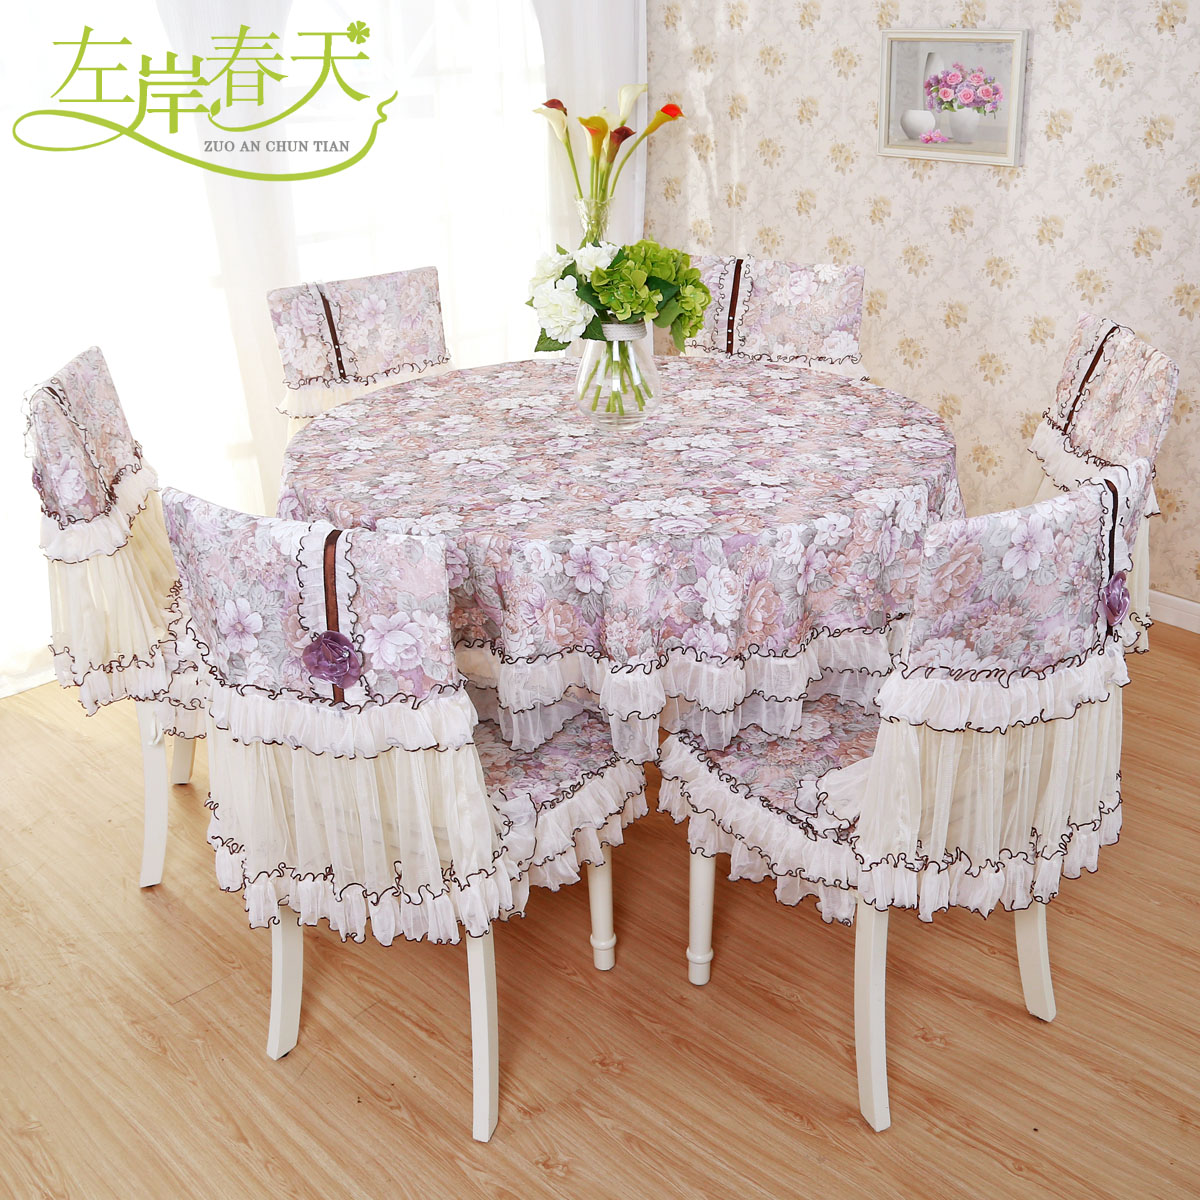 Picture of: Buy Large Round Table Cloth Tablecloth Table Cloth Upholstery Coverings Suit Round The Living Room Dining Tables And Chairs Garden Table Cloth Coverings Package In Cheap Price On M Alibaba Com